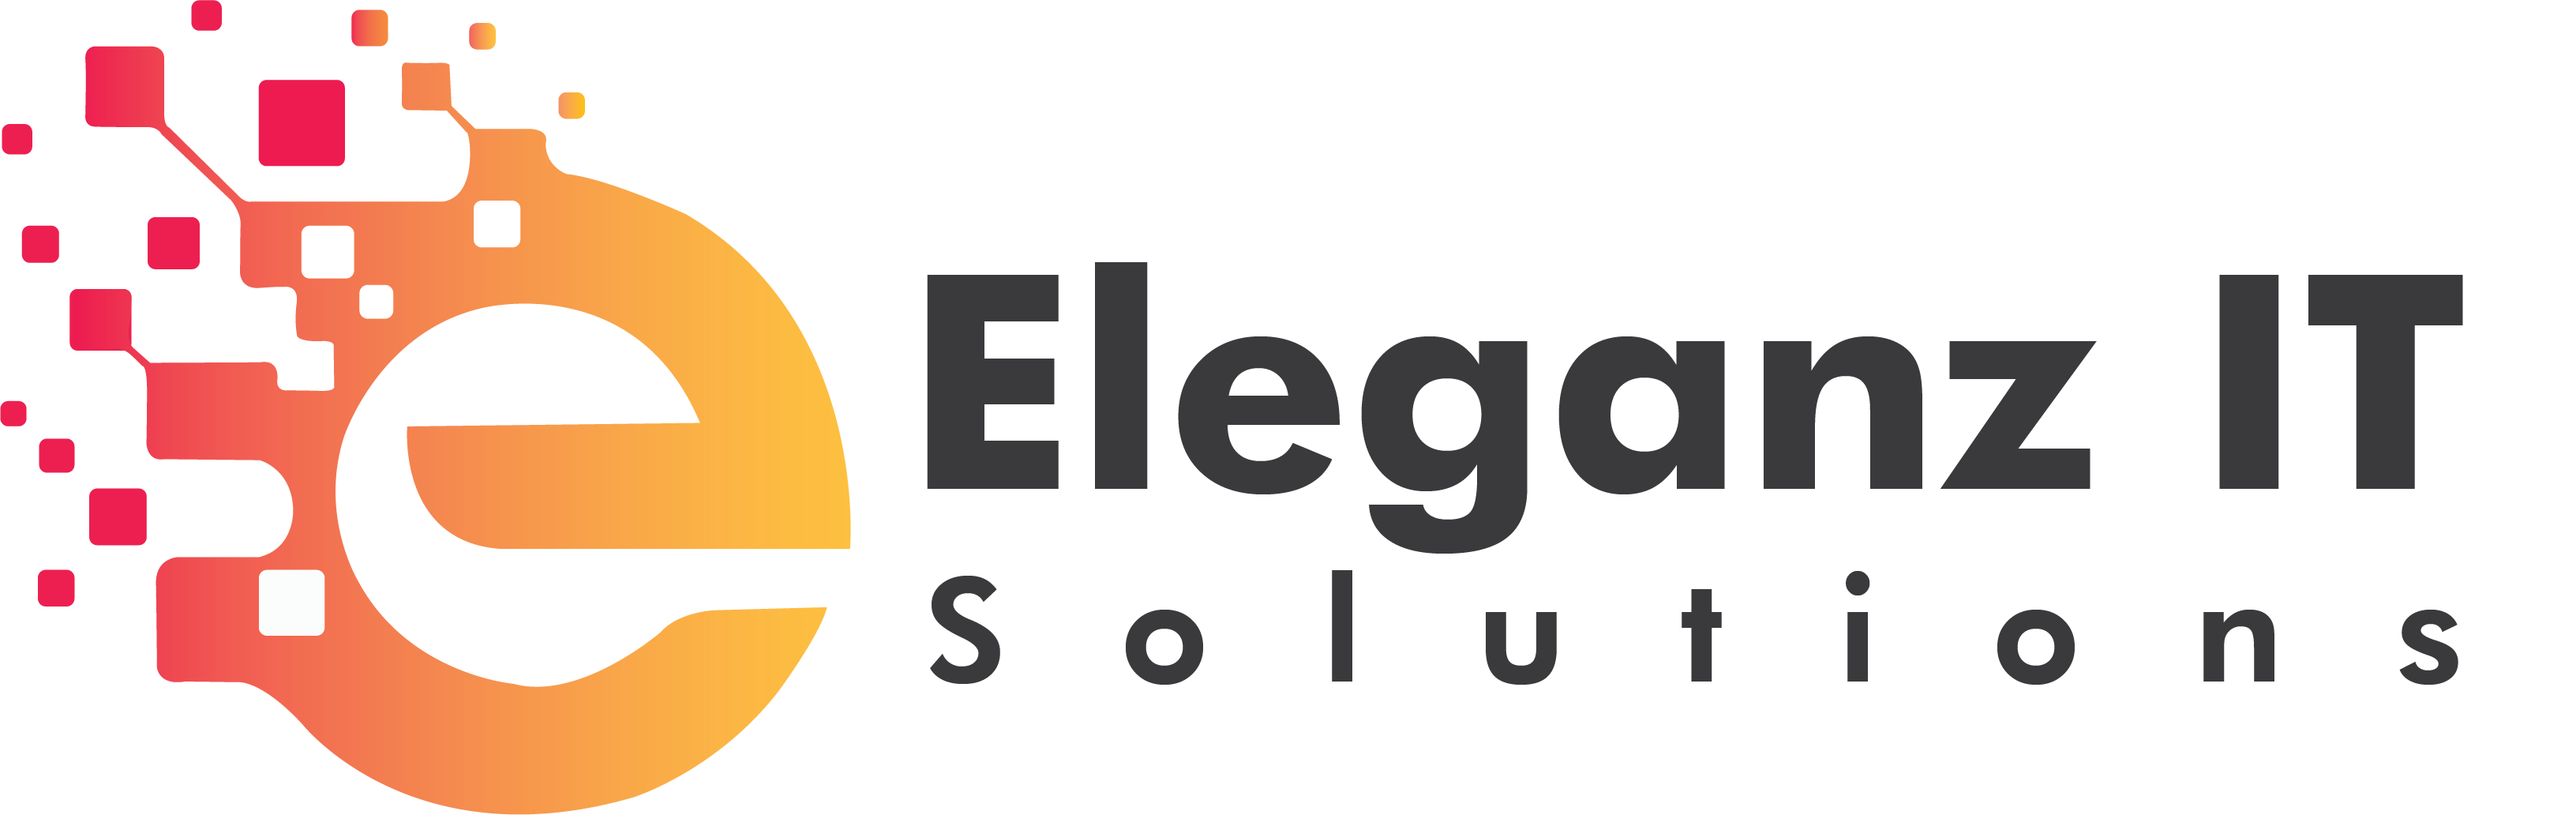 Eleganz IT Solutions Pvt Ltd - Artificial Intelligence company logo